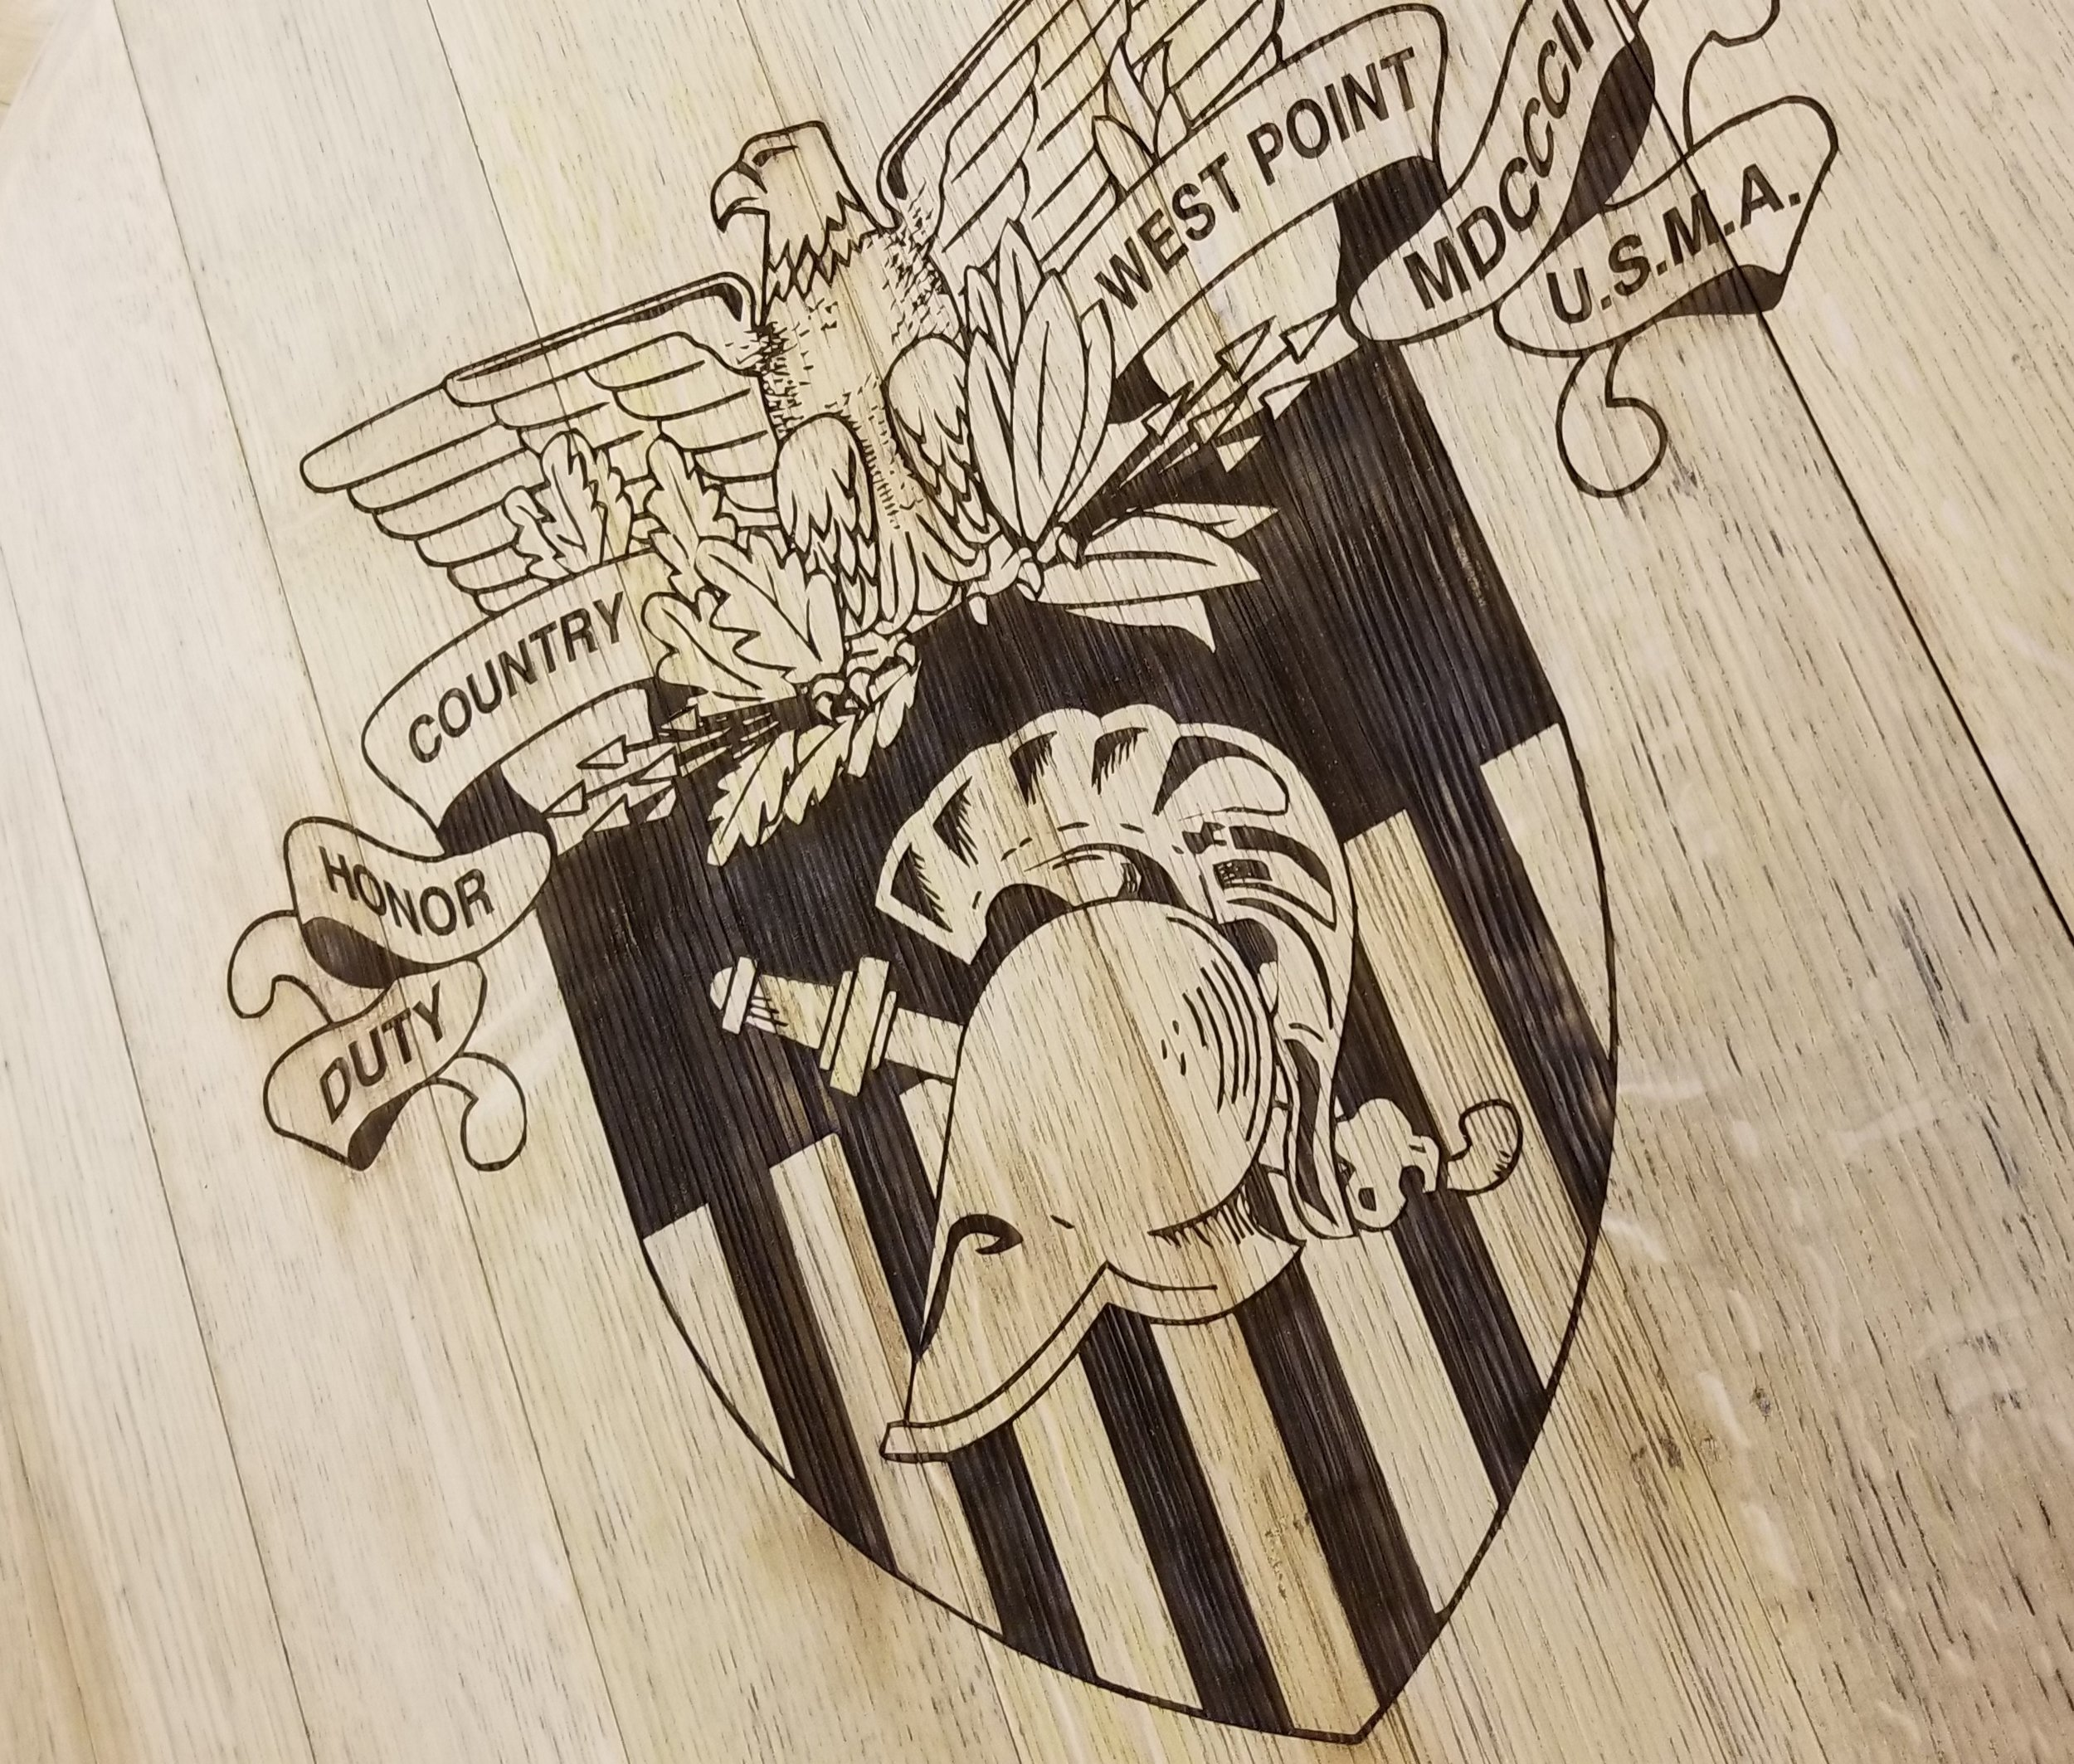 Copy of Wood Engraving - Custom Wood Burning - Custom Projects - Engrave It Houston